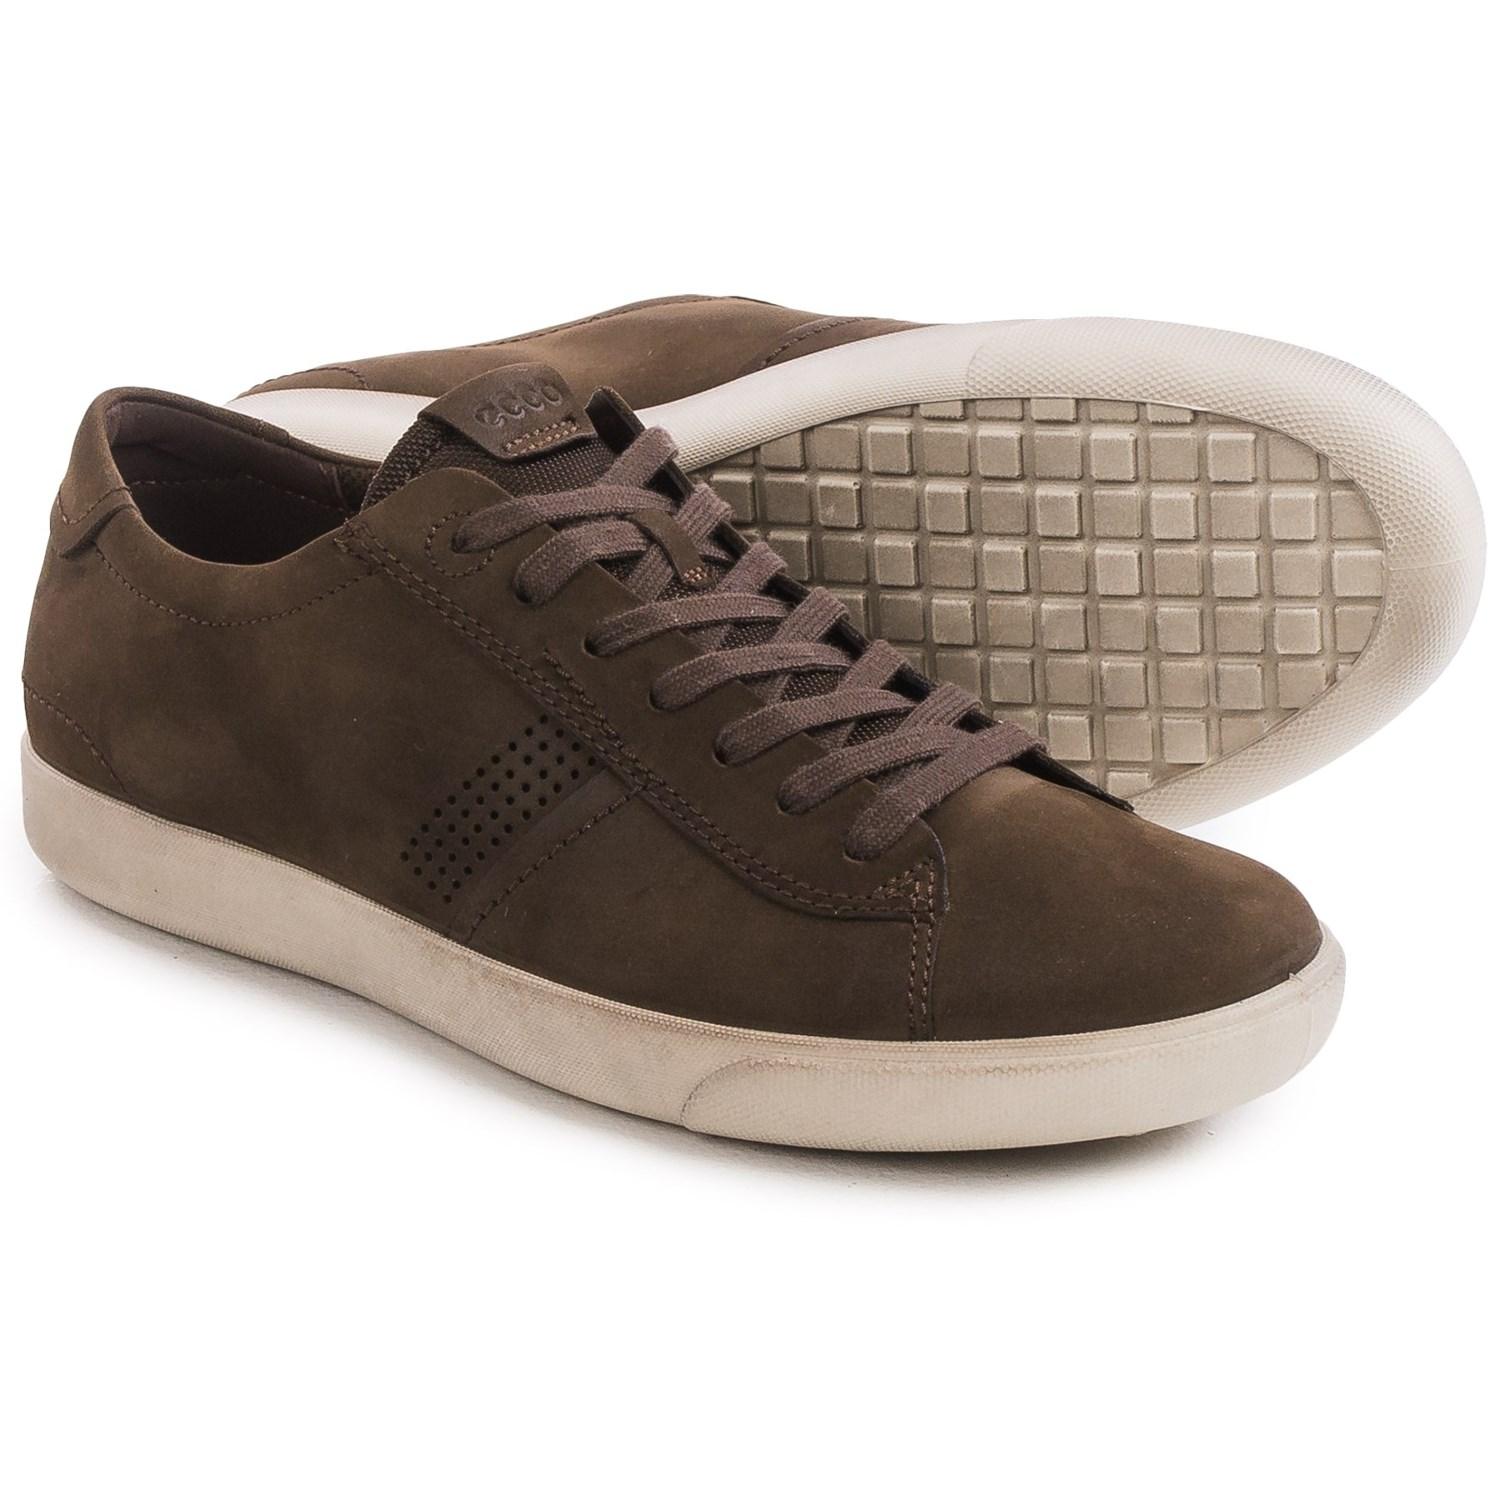 ecco gary casual sneakers for men   save 46